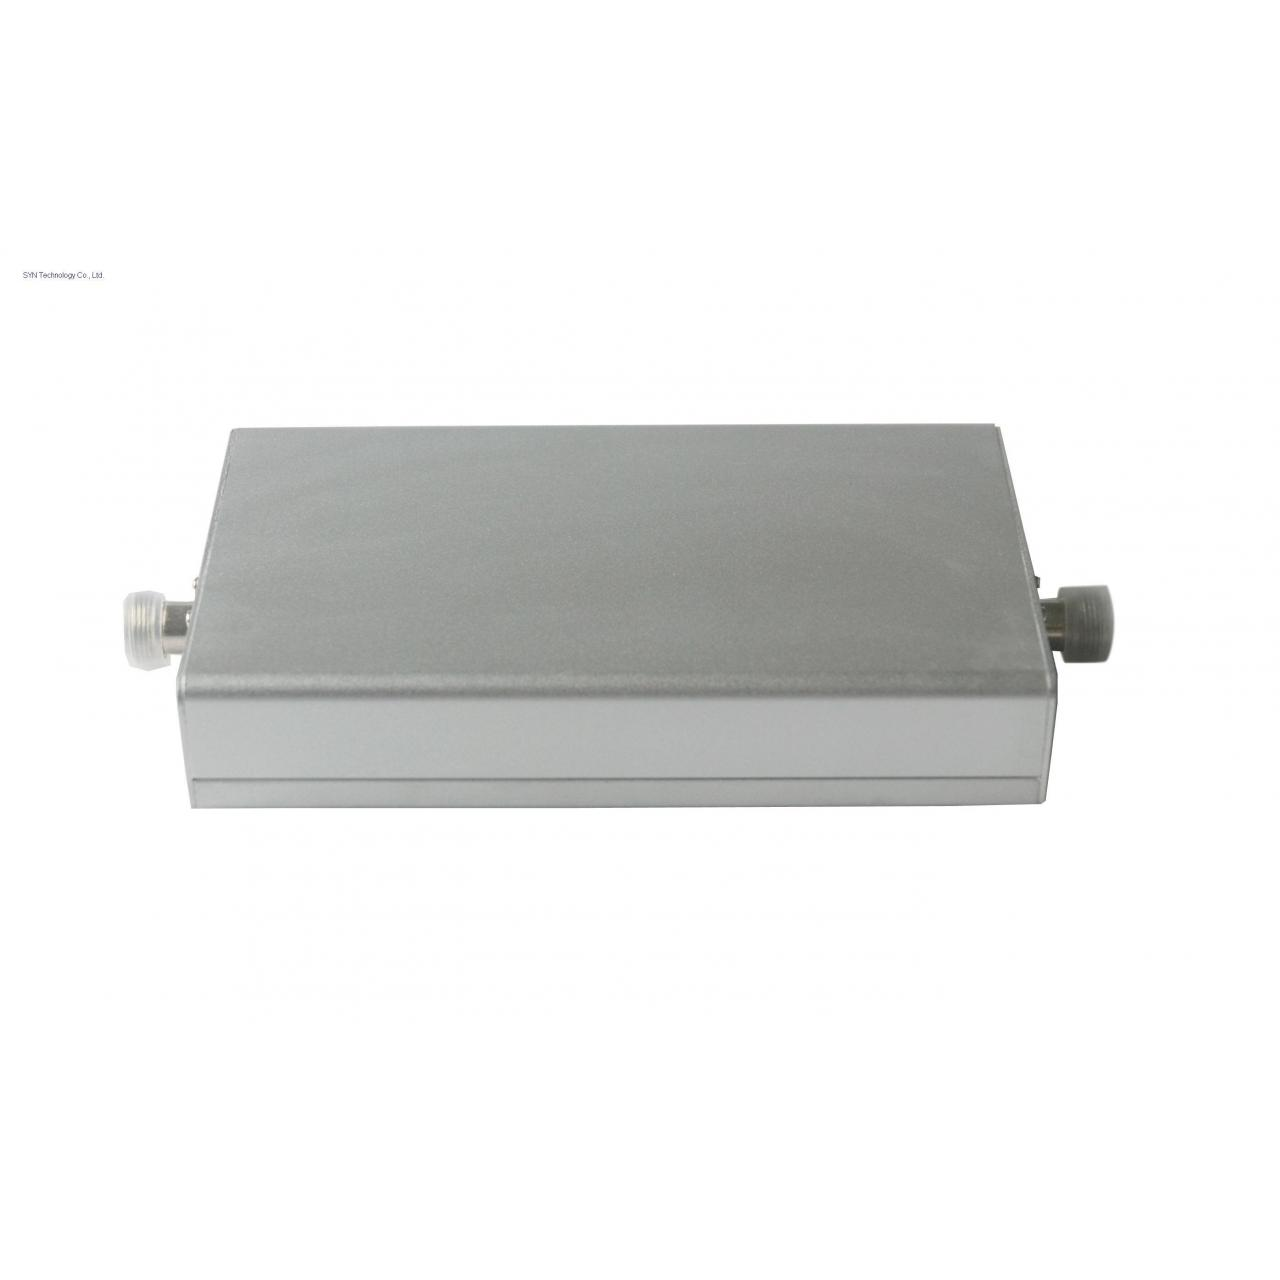 Signal repeater Product name:23dBm CDMA800Mhz Signal repeater(booster)